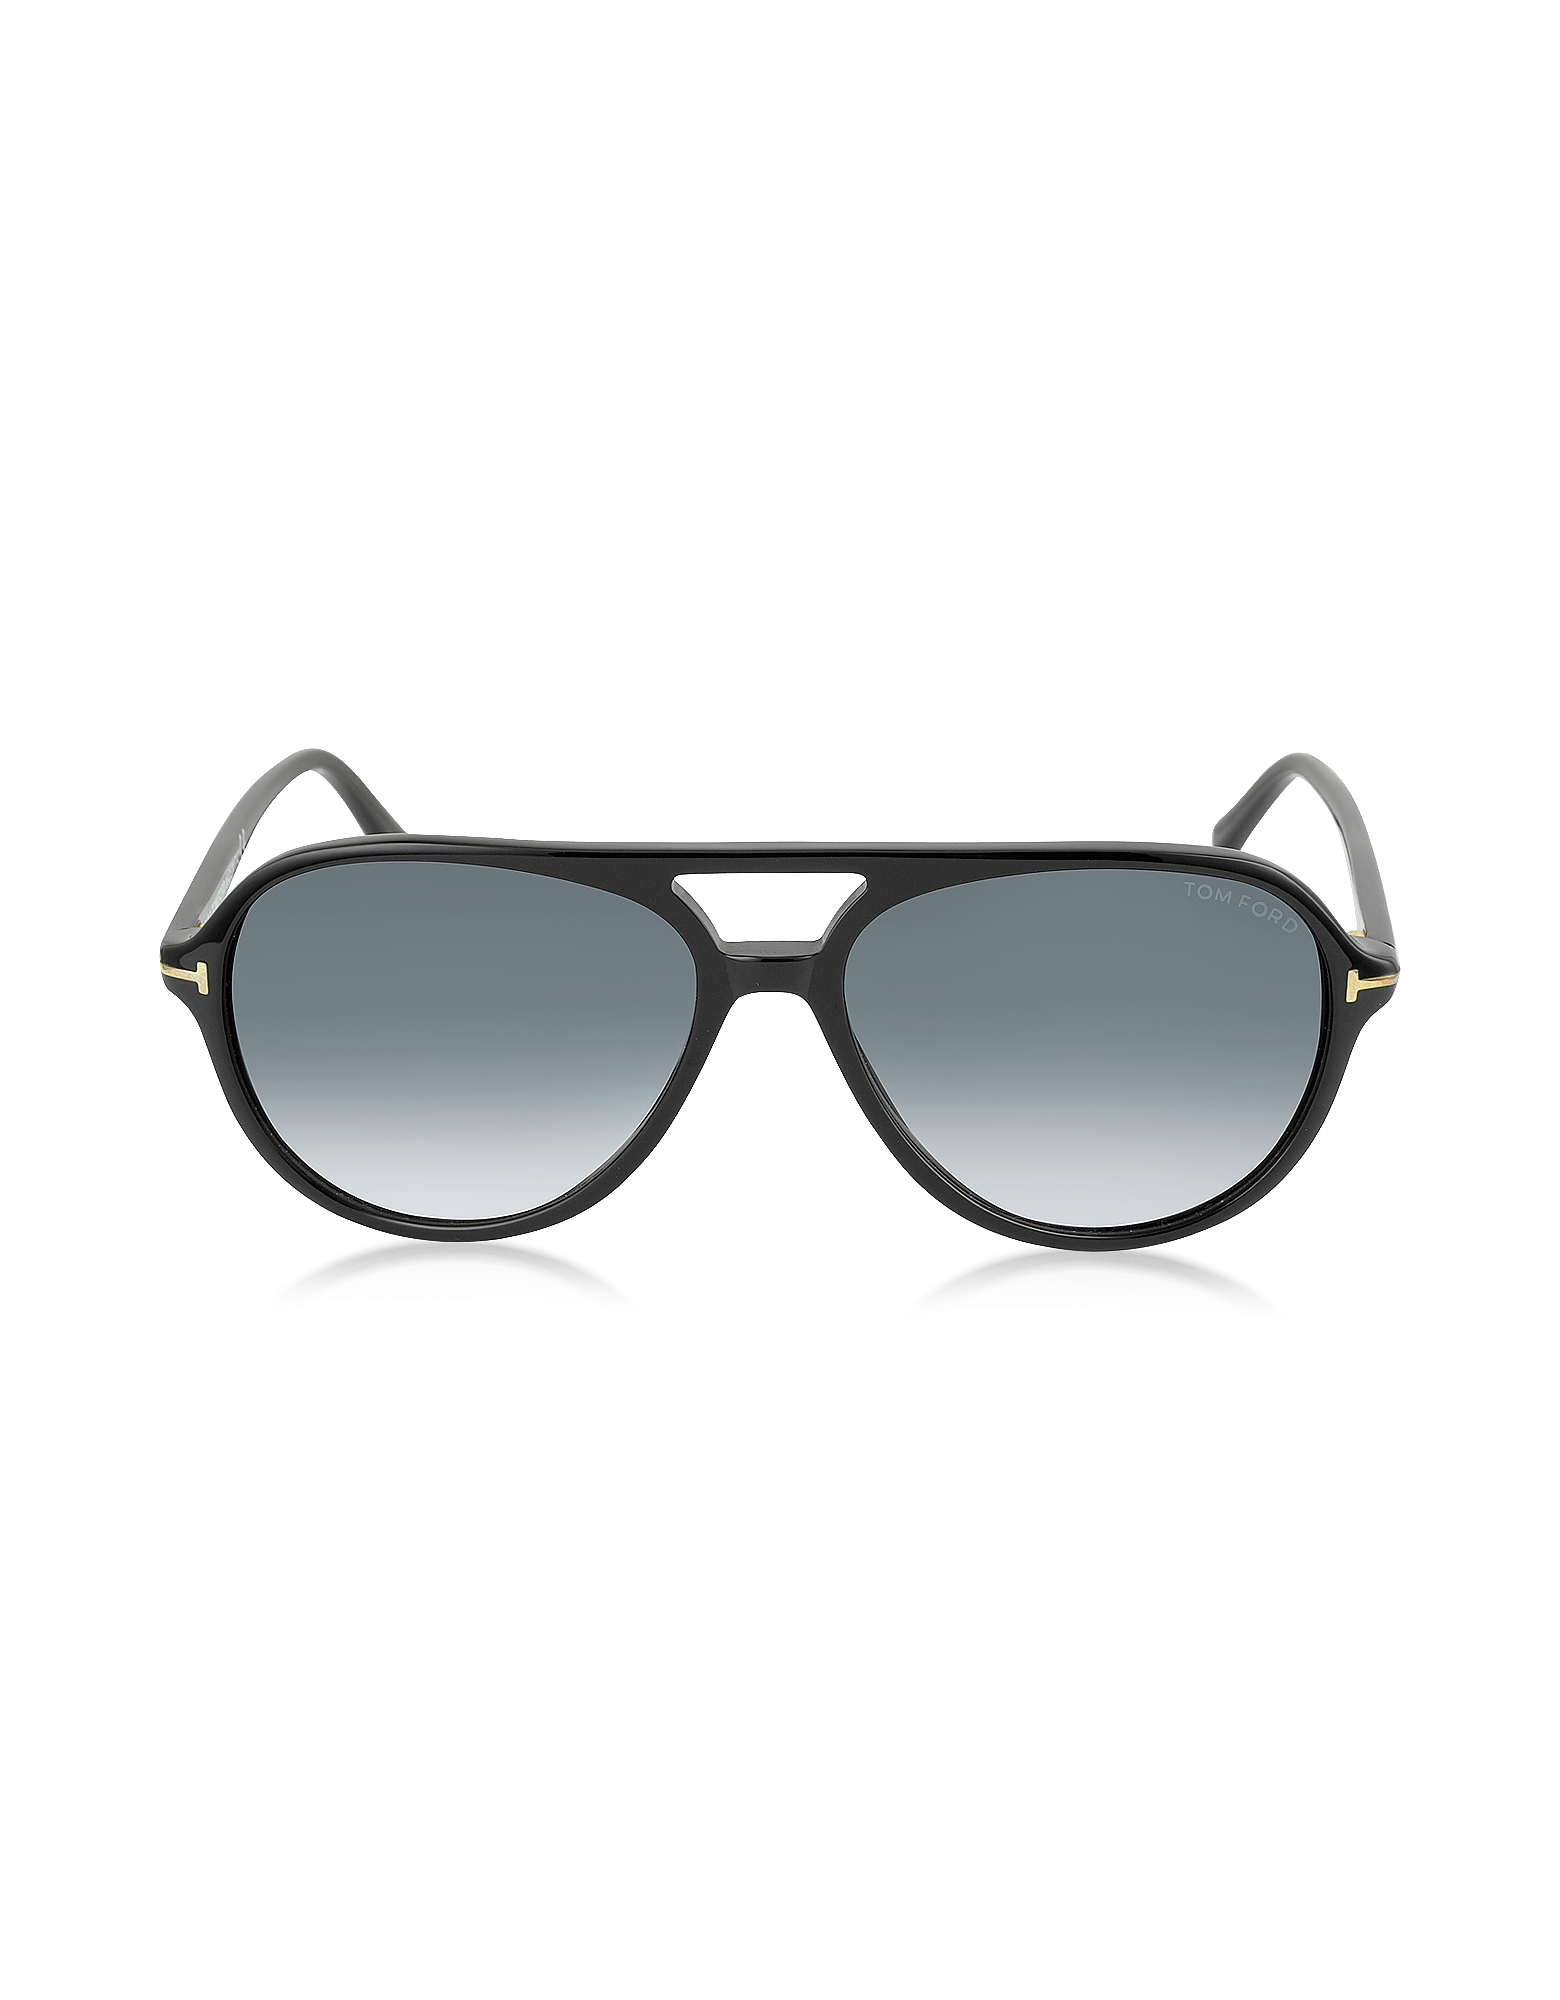 Tom Ford Sunglasses, JARED FT0331 Aviator Sunglasses